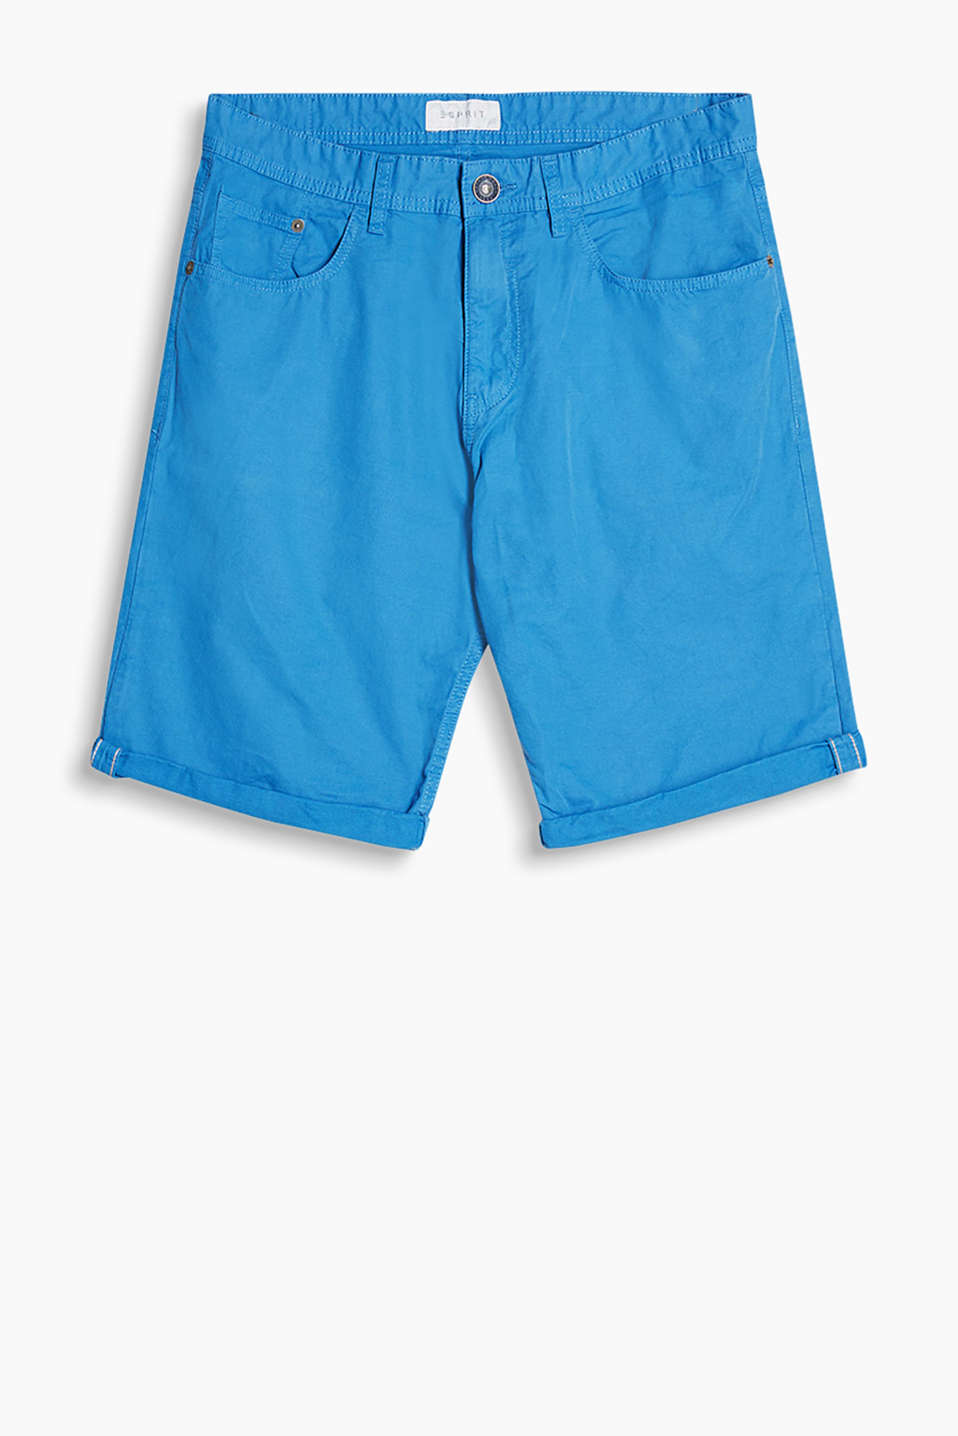 Shorts in a plain-coloured look made of soft cotton fabric